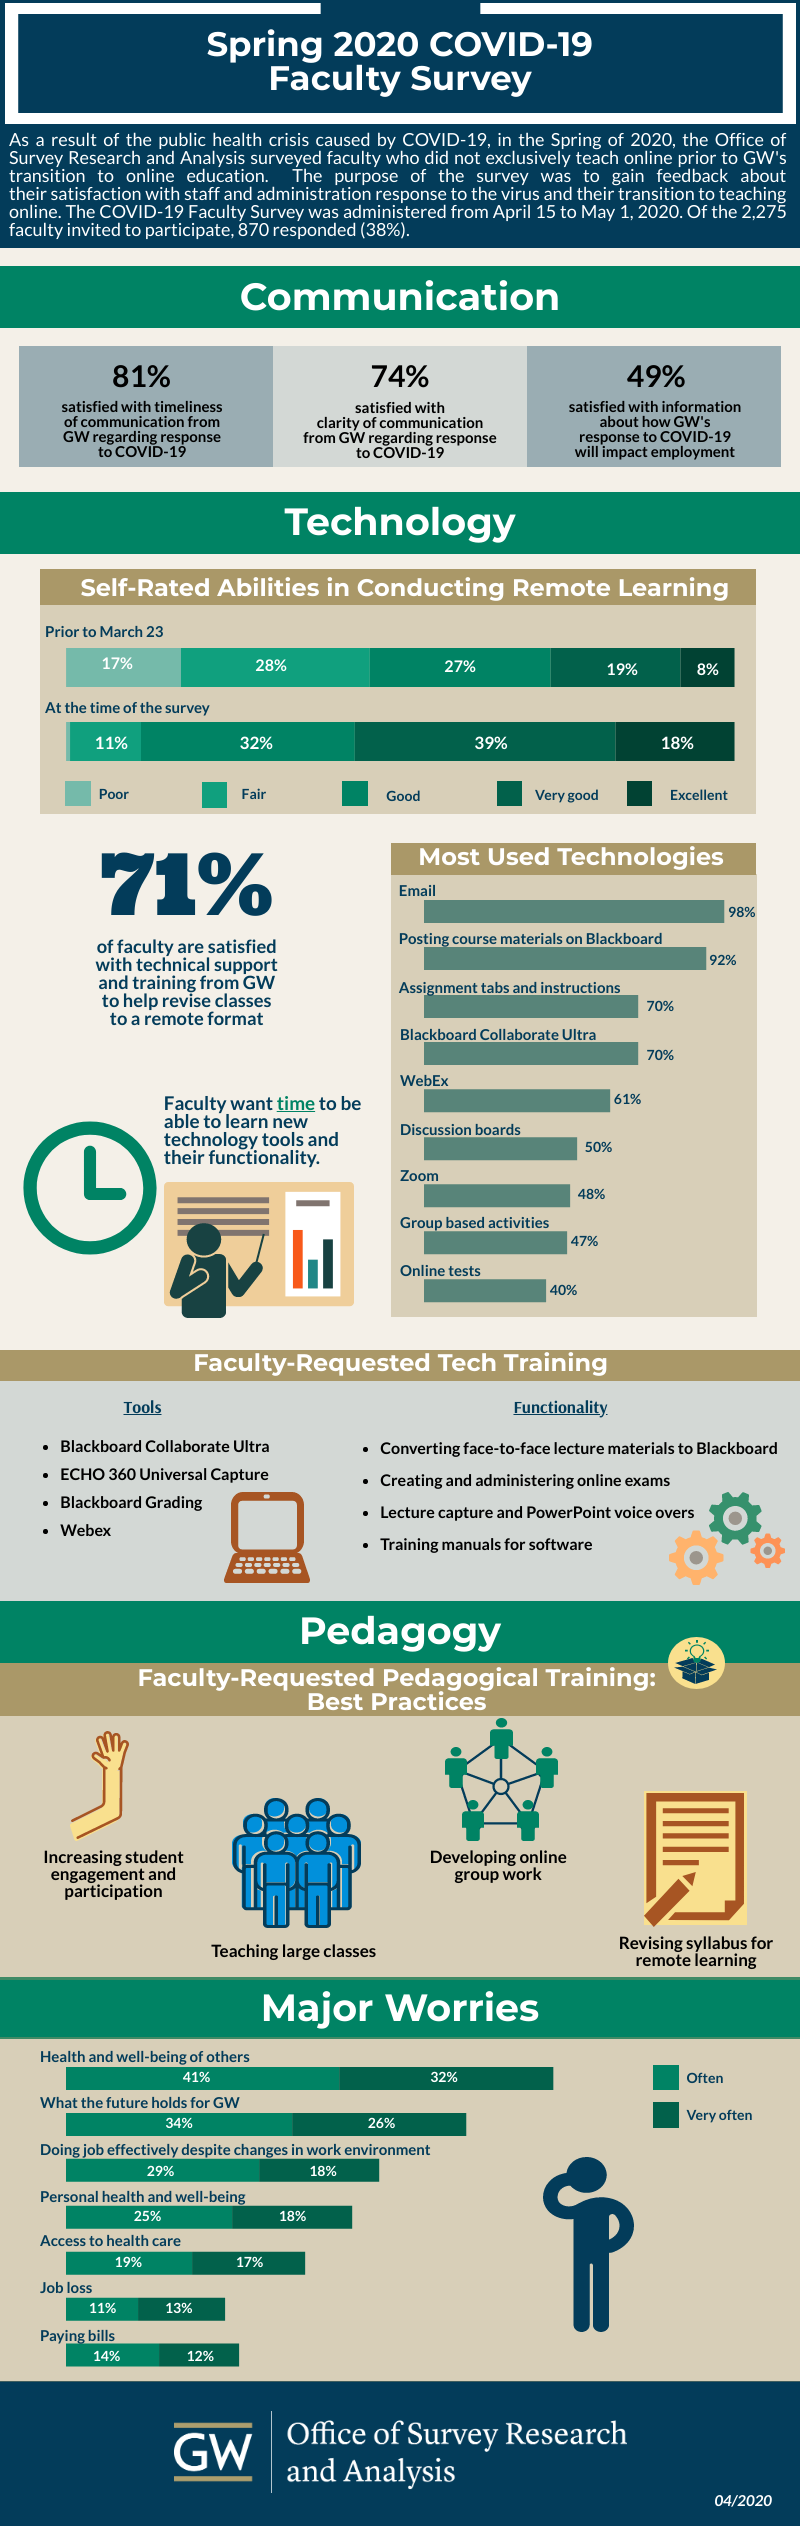 Spring 2020 COVID-19 Faculty Survey Infographic